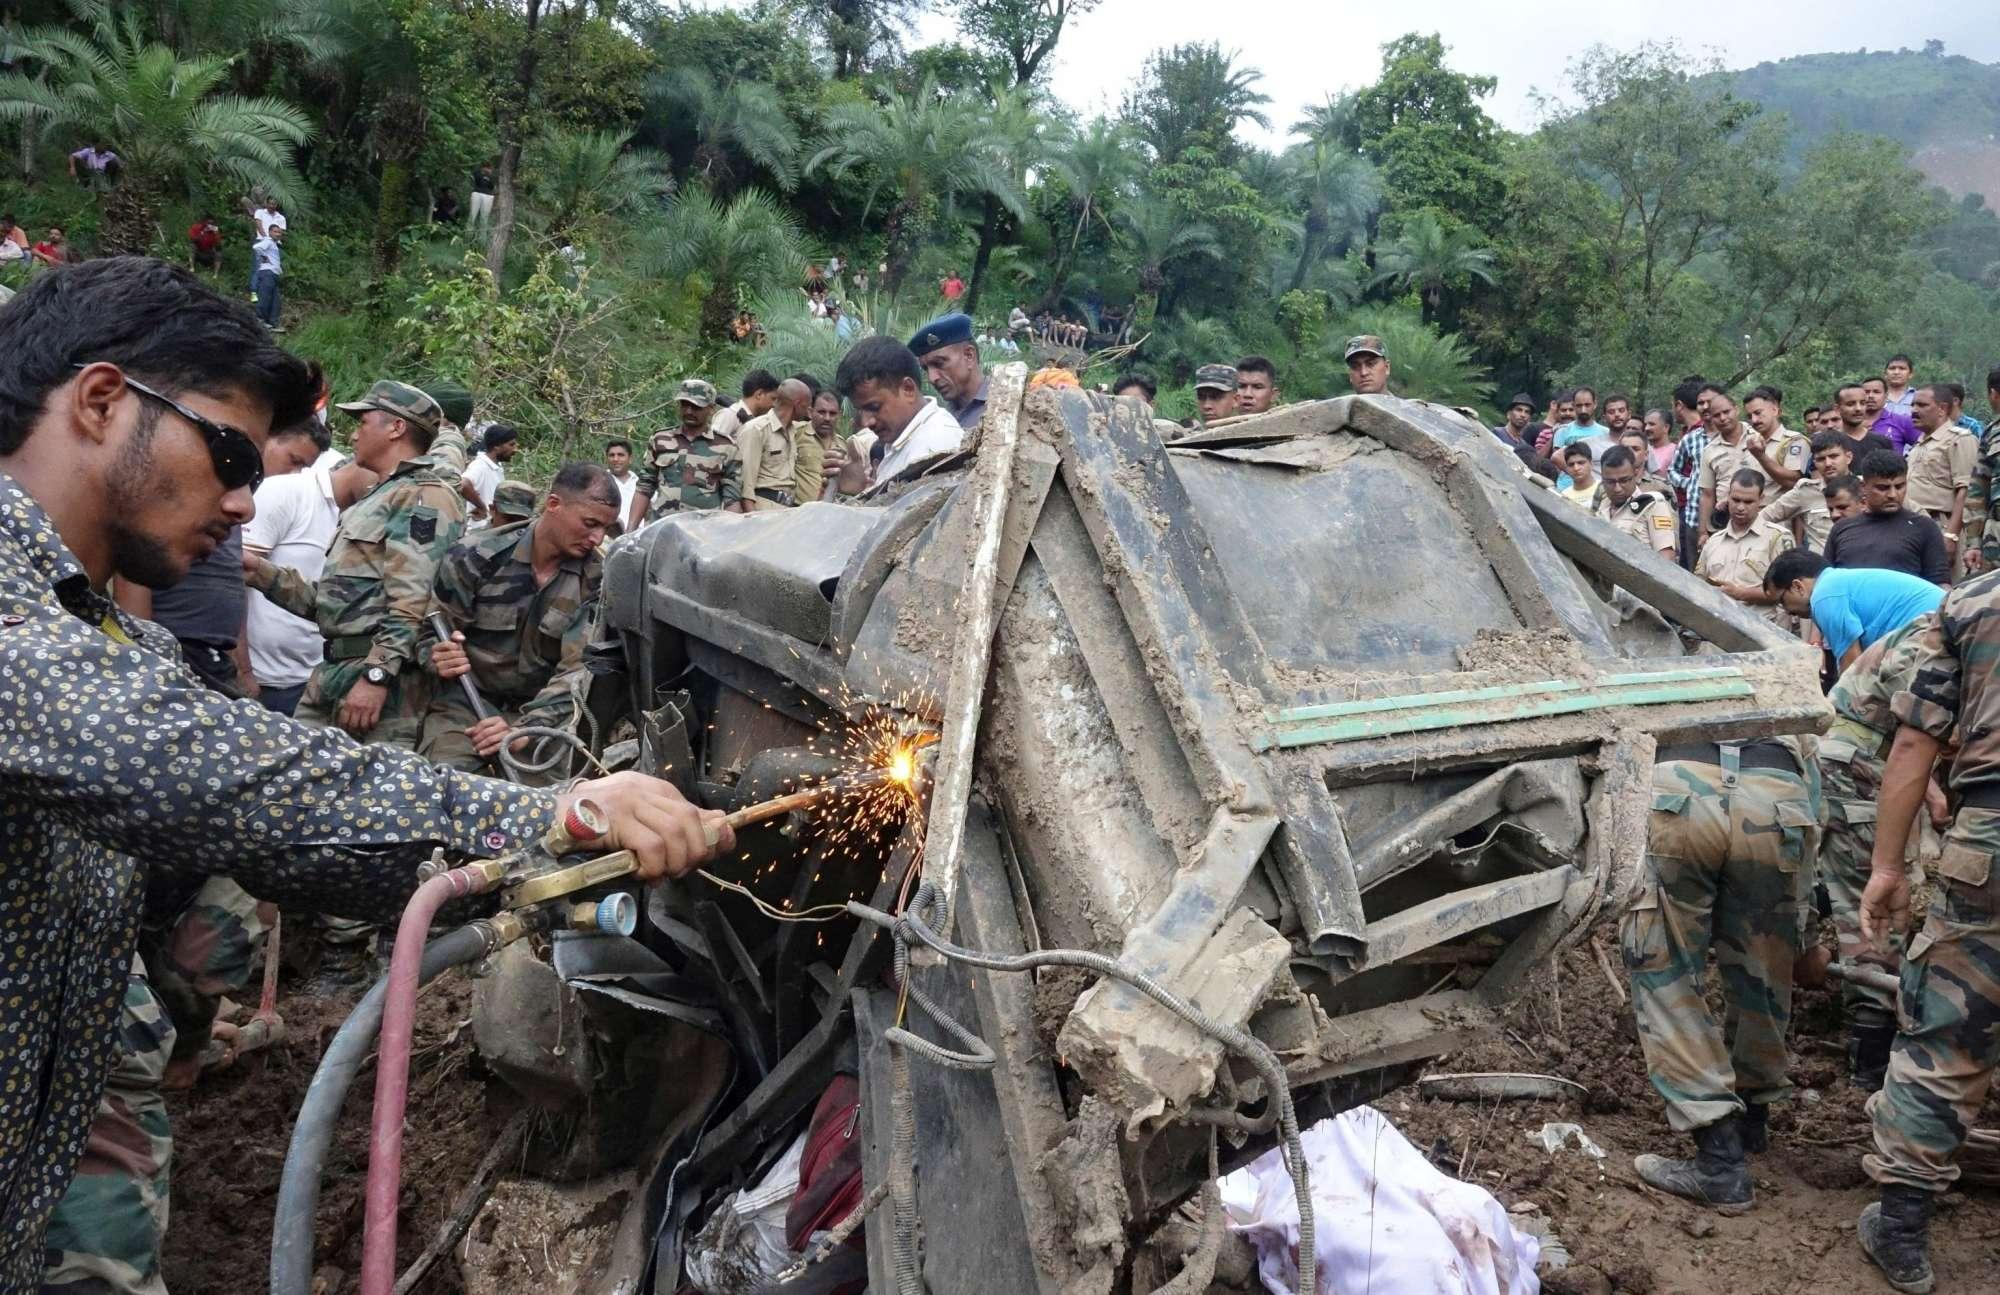 Frana su autobus in India, morti e dispersi